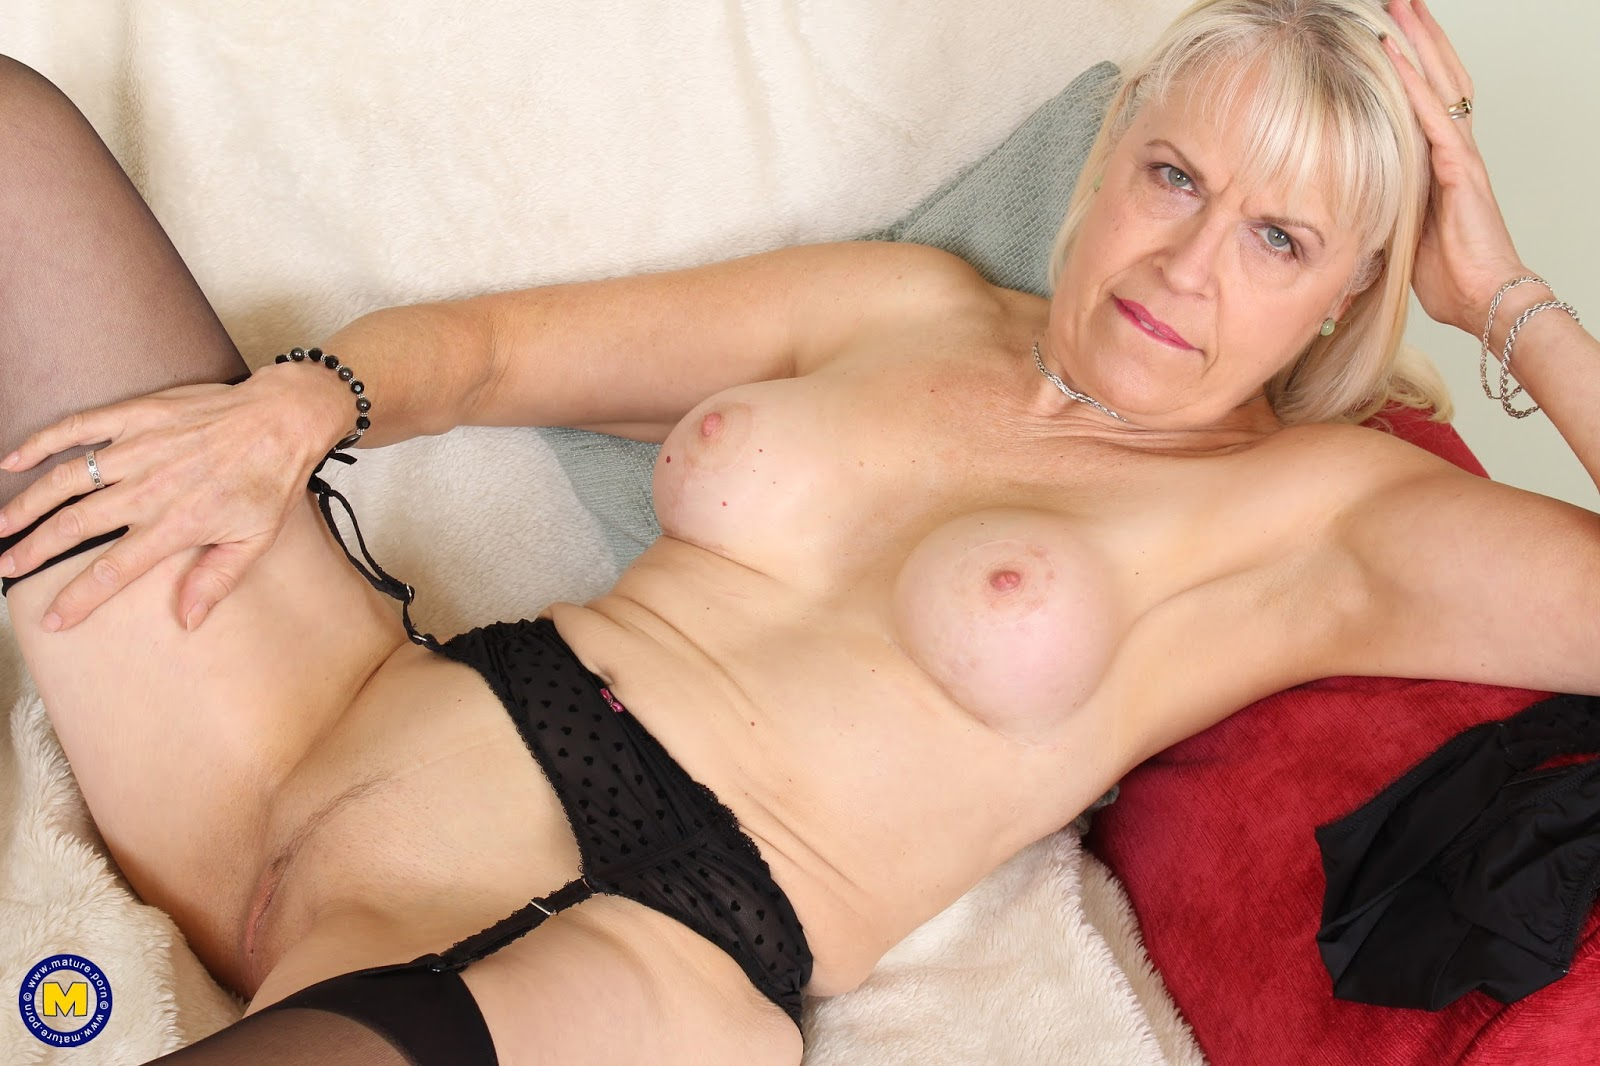 Archive Of Old Women Hardcore  Softcore Mature Pics And Vids-8664